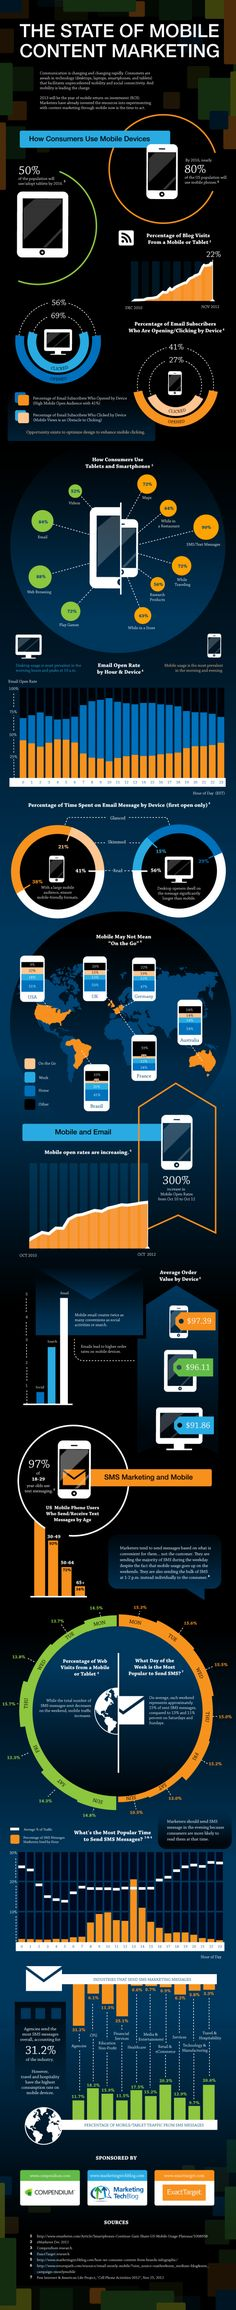 [Infographie] L'état du marketing de contenu sur mobile